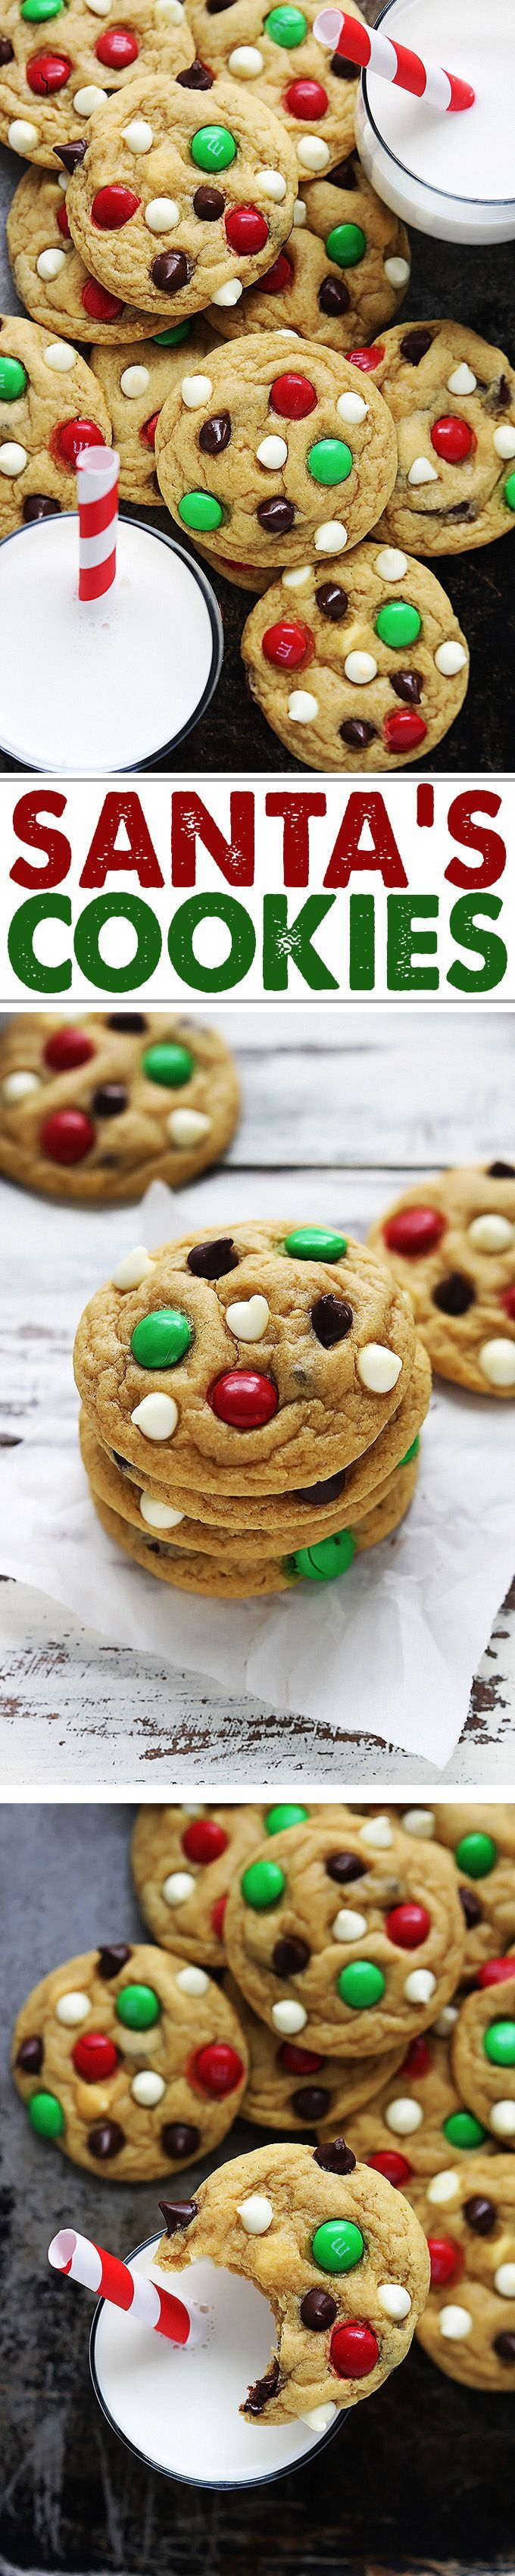 Santa's favorite cookies! Soft and chewy double chocolate chip pudding cookies with M&M candies.